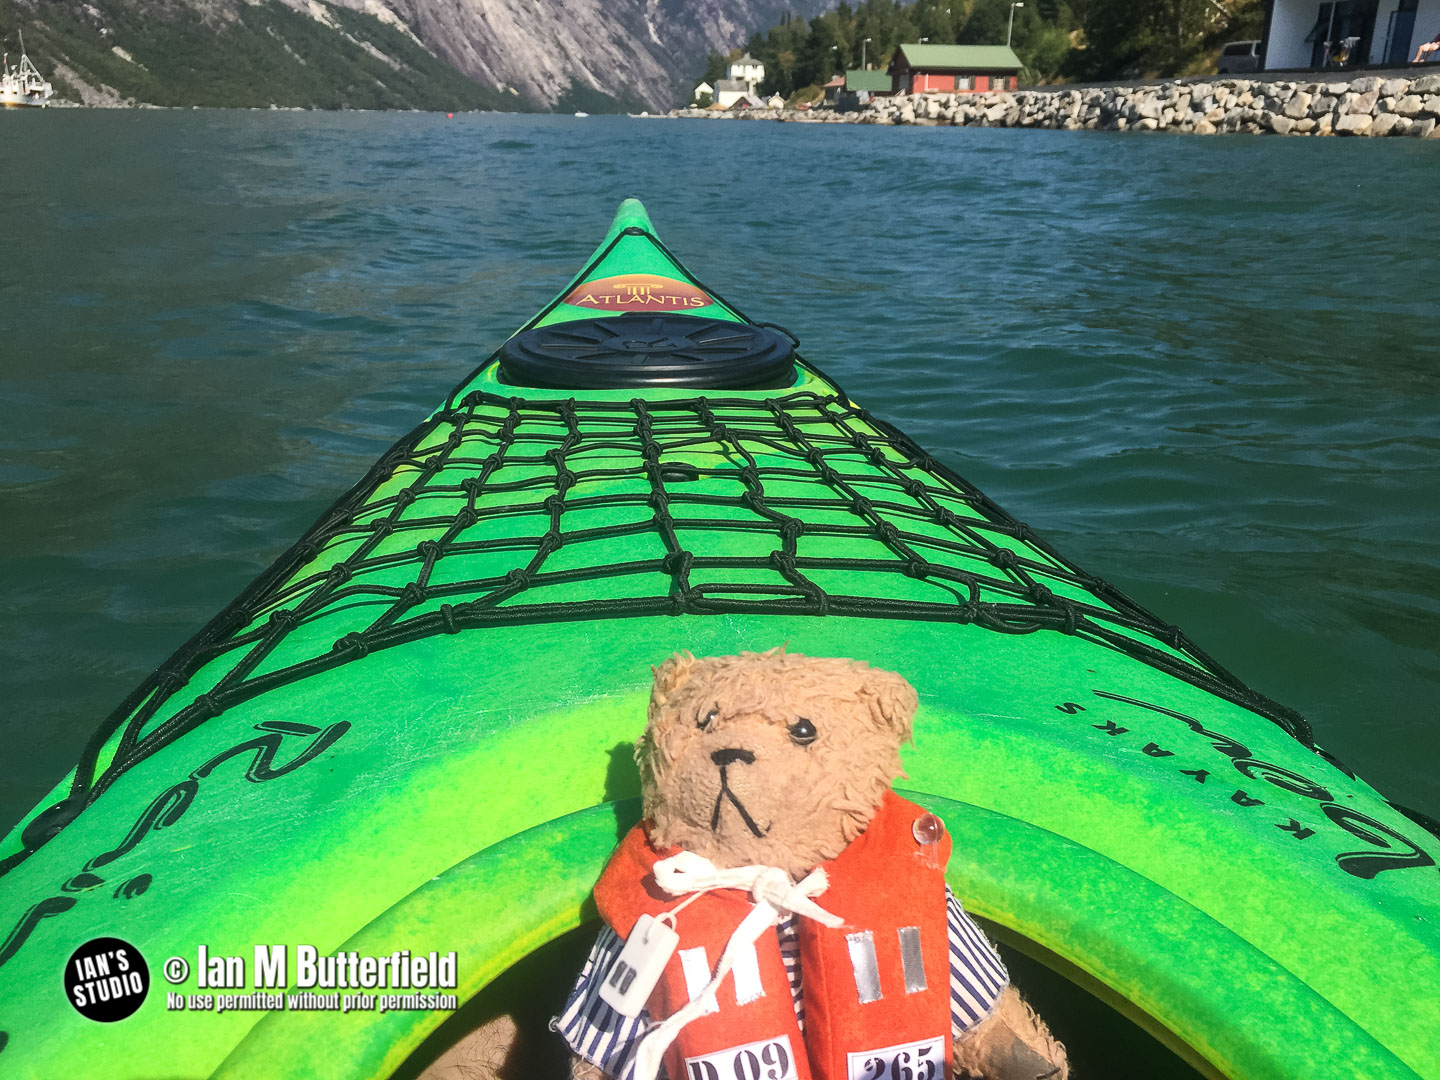 POTD 4 Aug 2019: Kayaking at Eidfjord